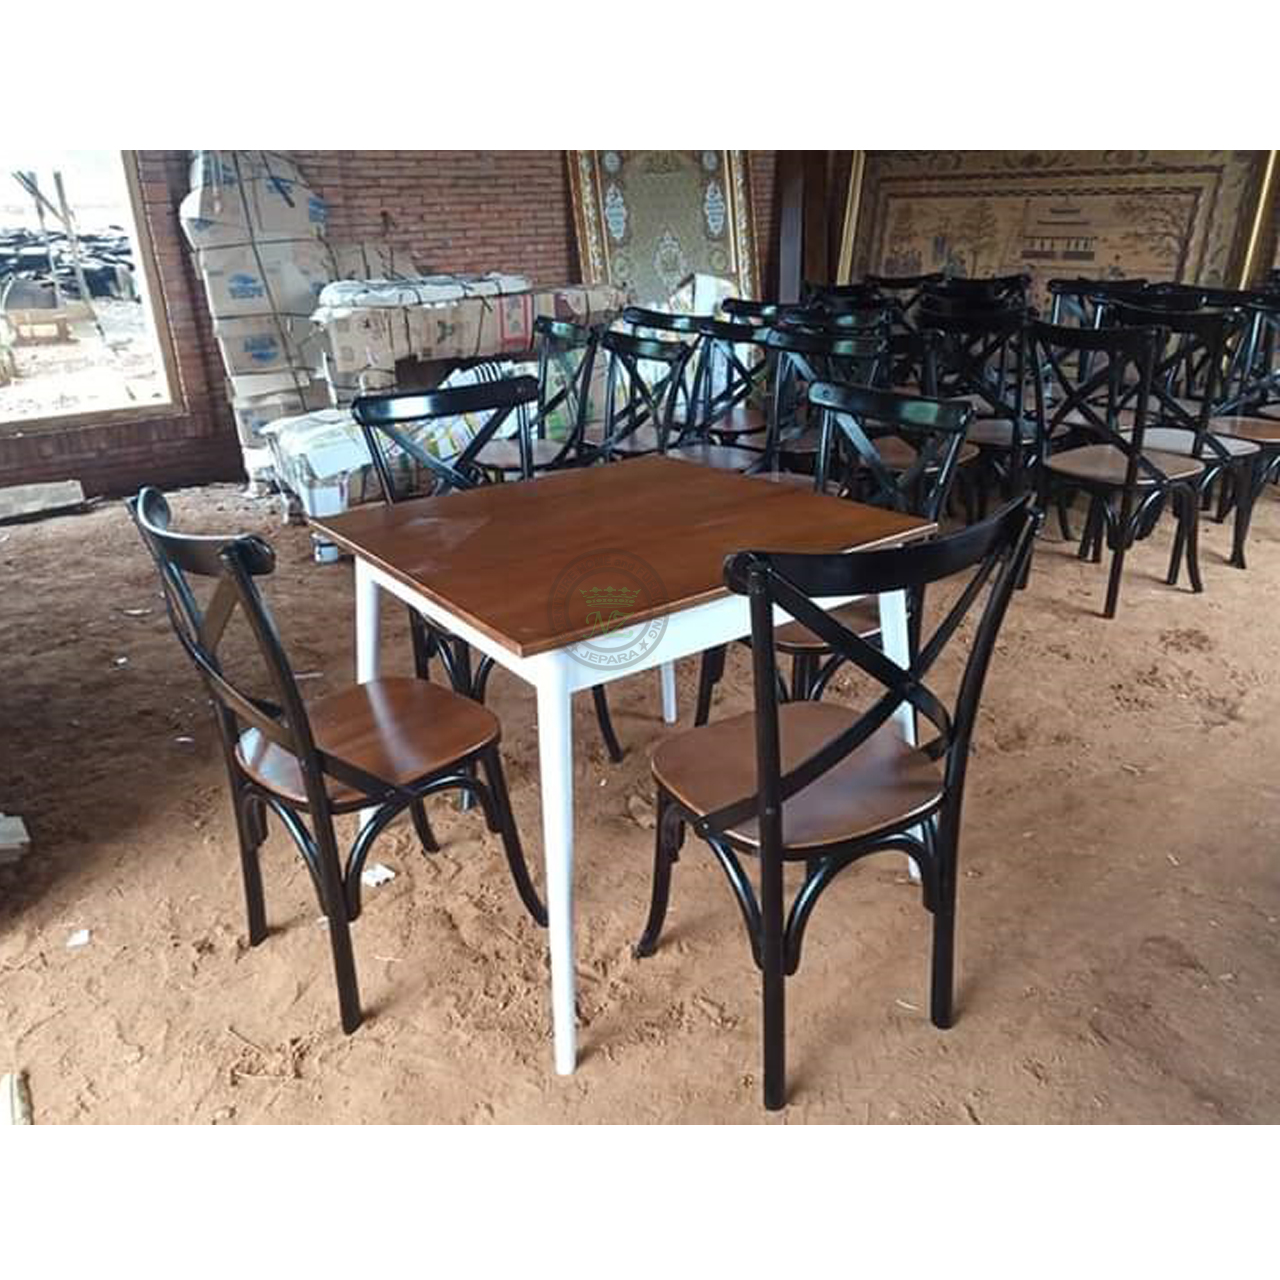 Inexpensive Cafe Table And Chair Furniture Manufacturer Indonesia